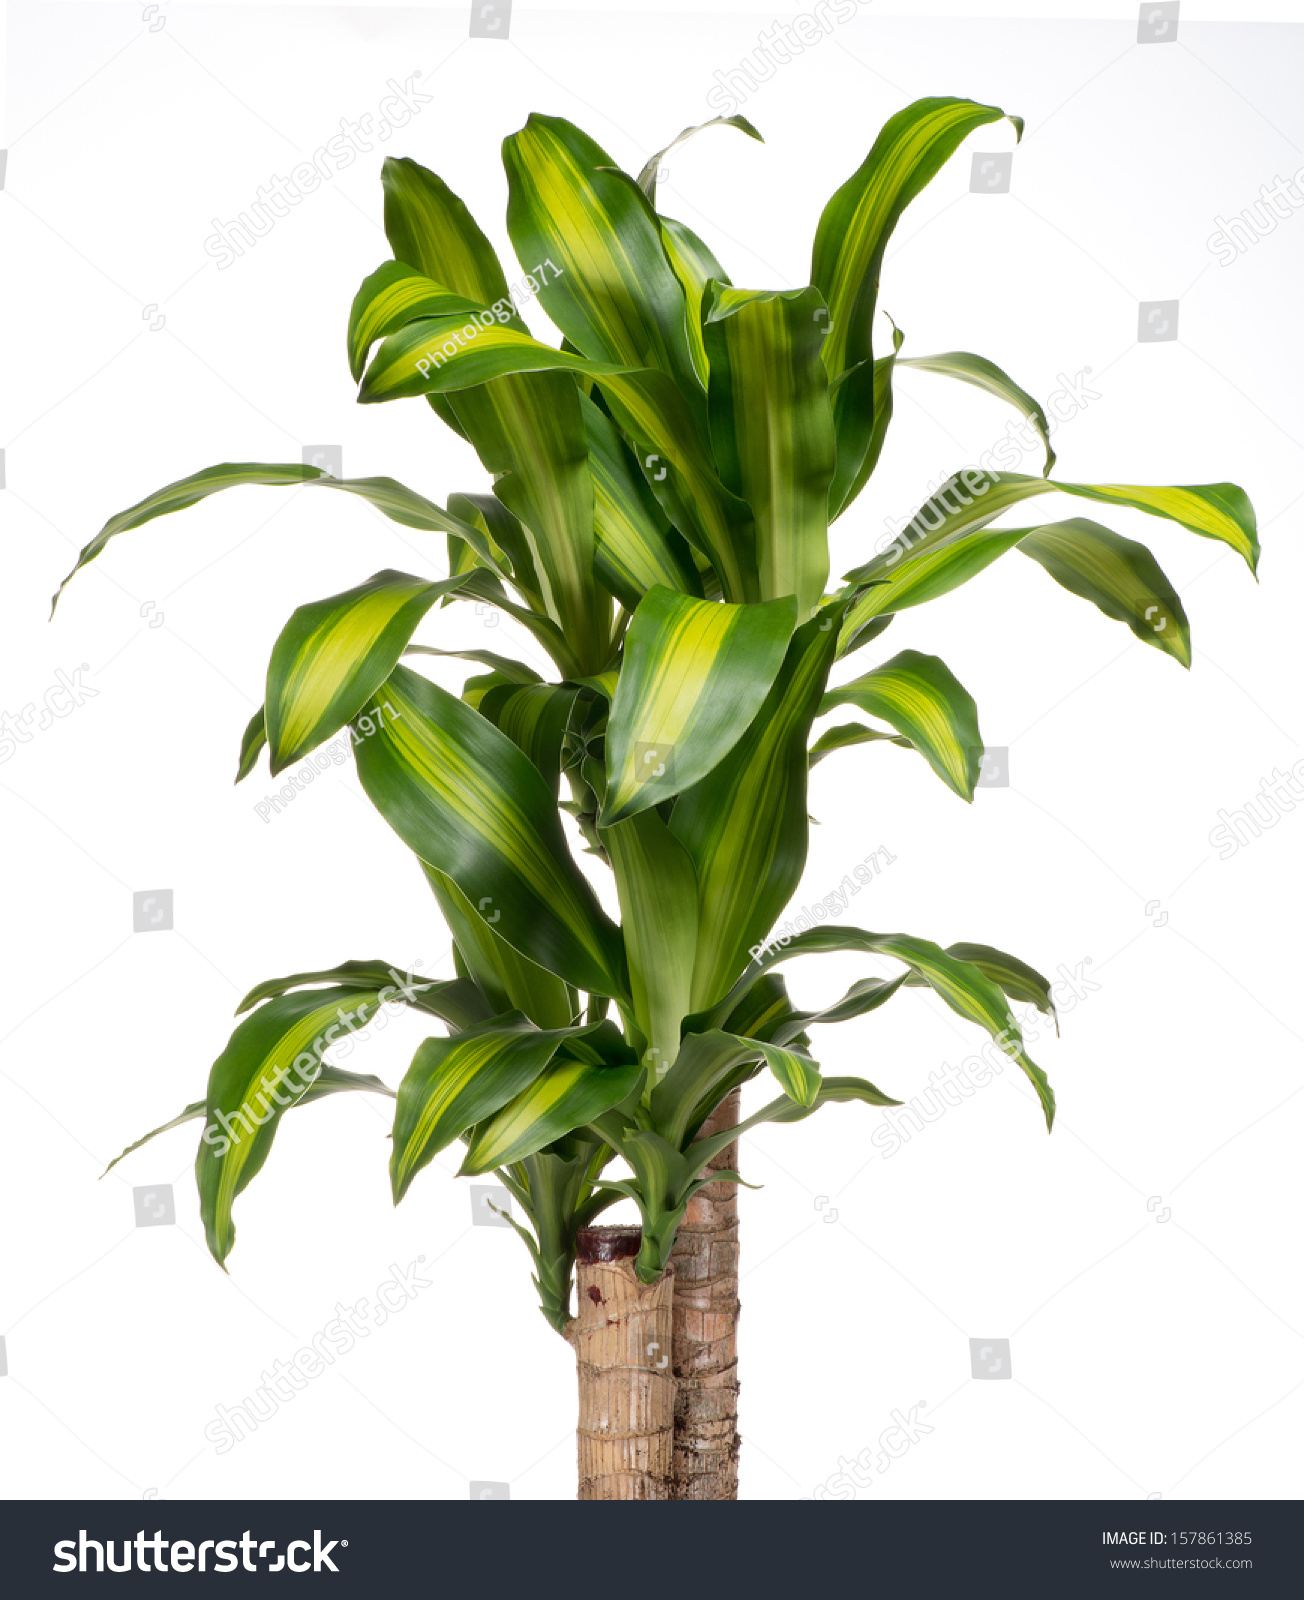 Ornamental Variegated Foliage Yucca Plant Cultivated Stock